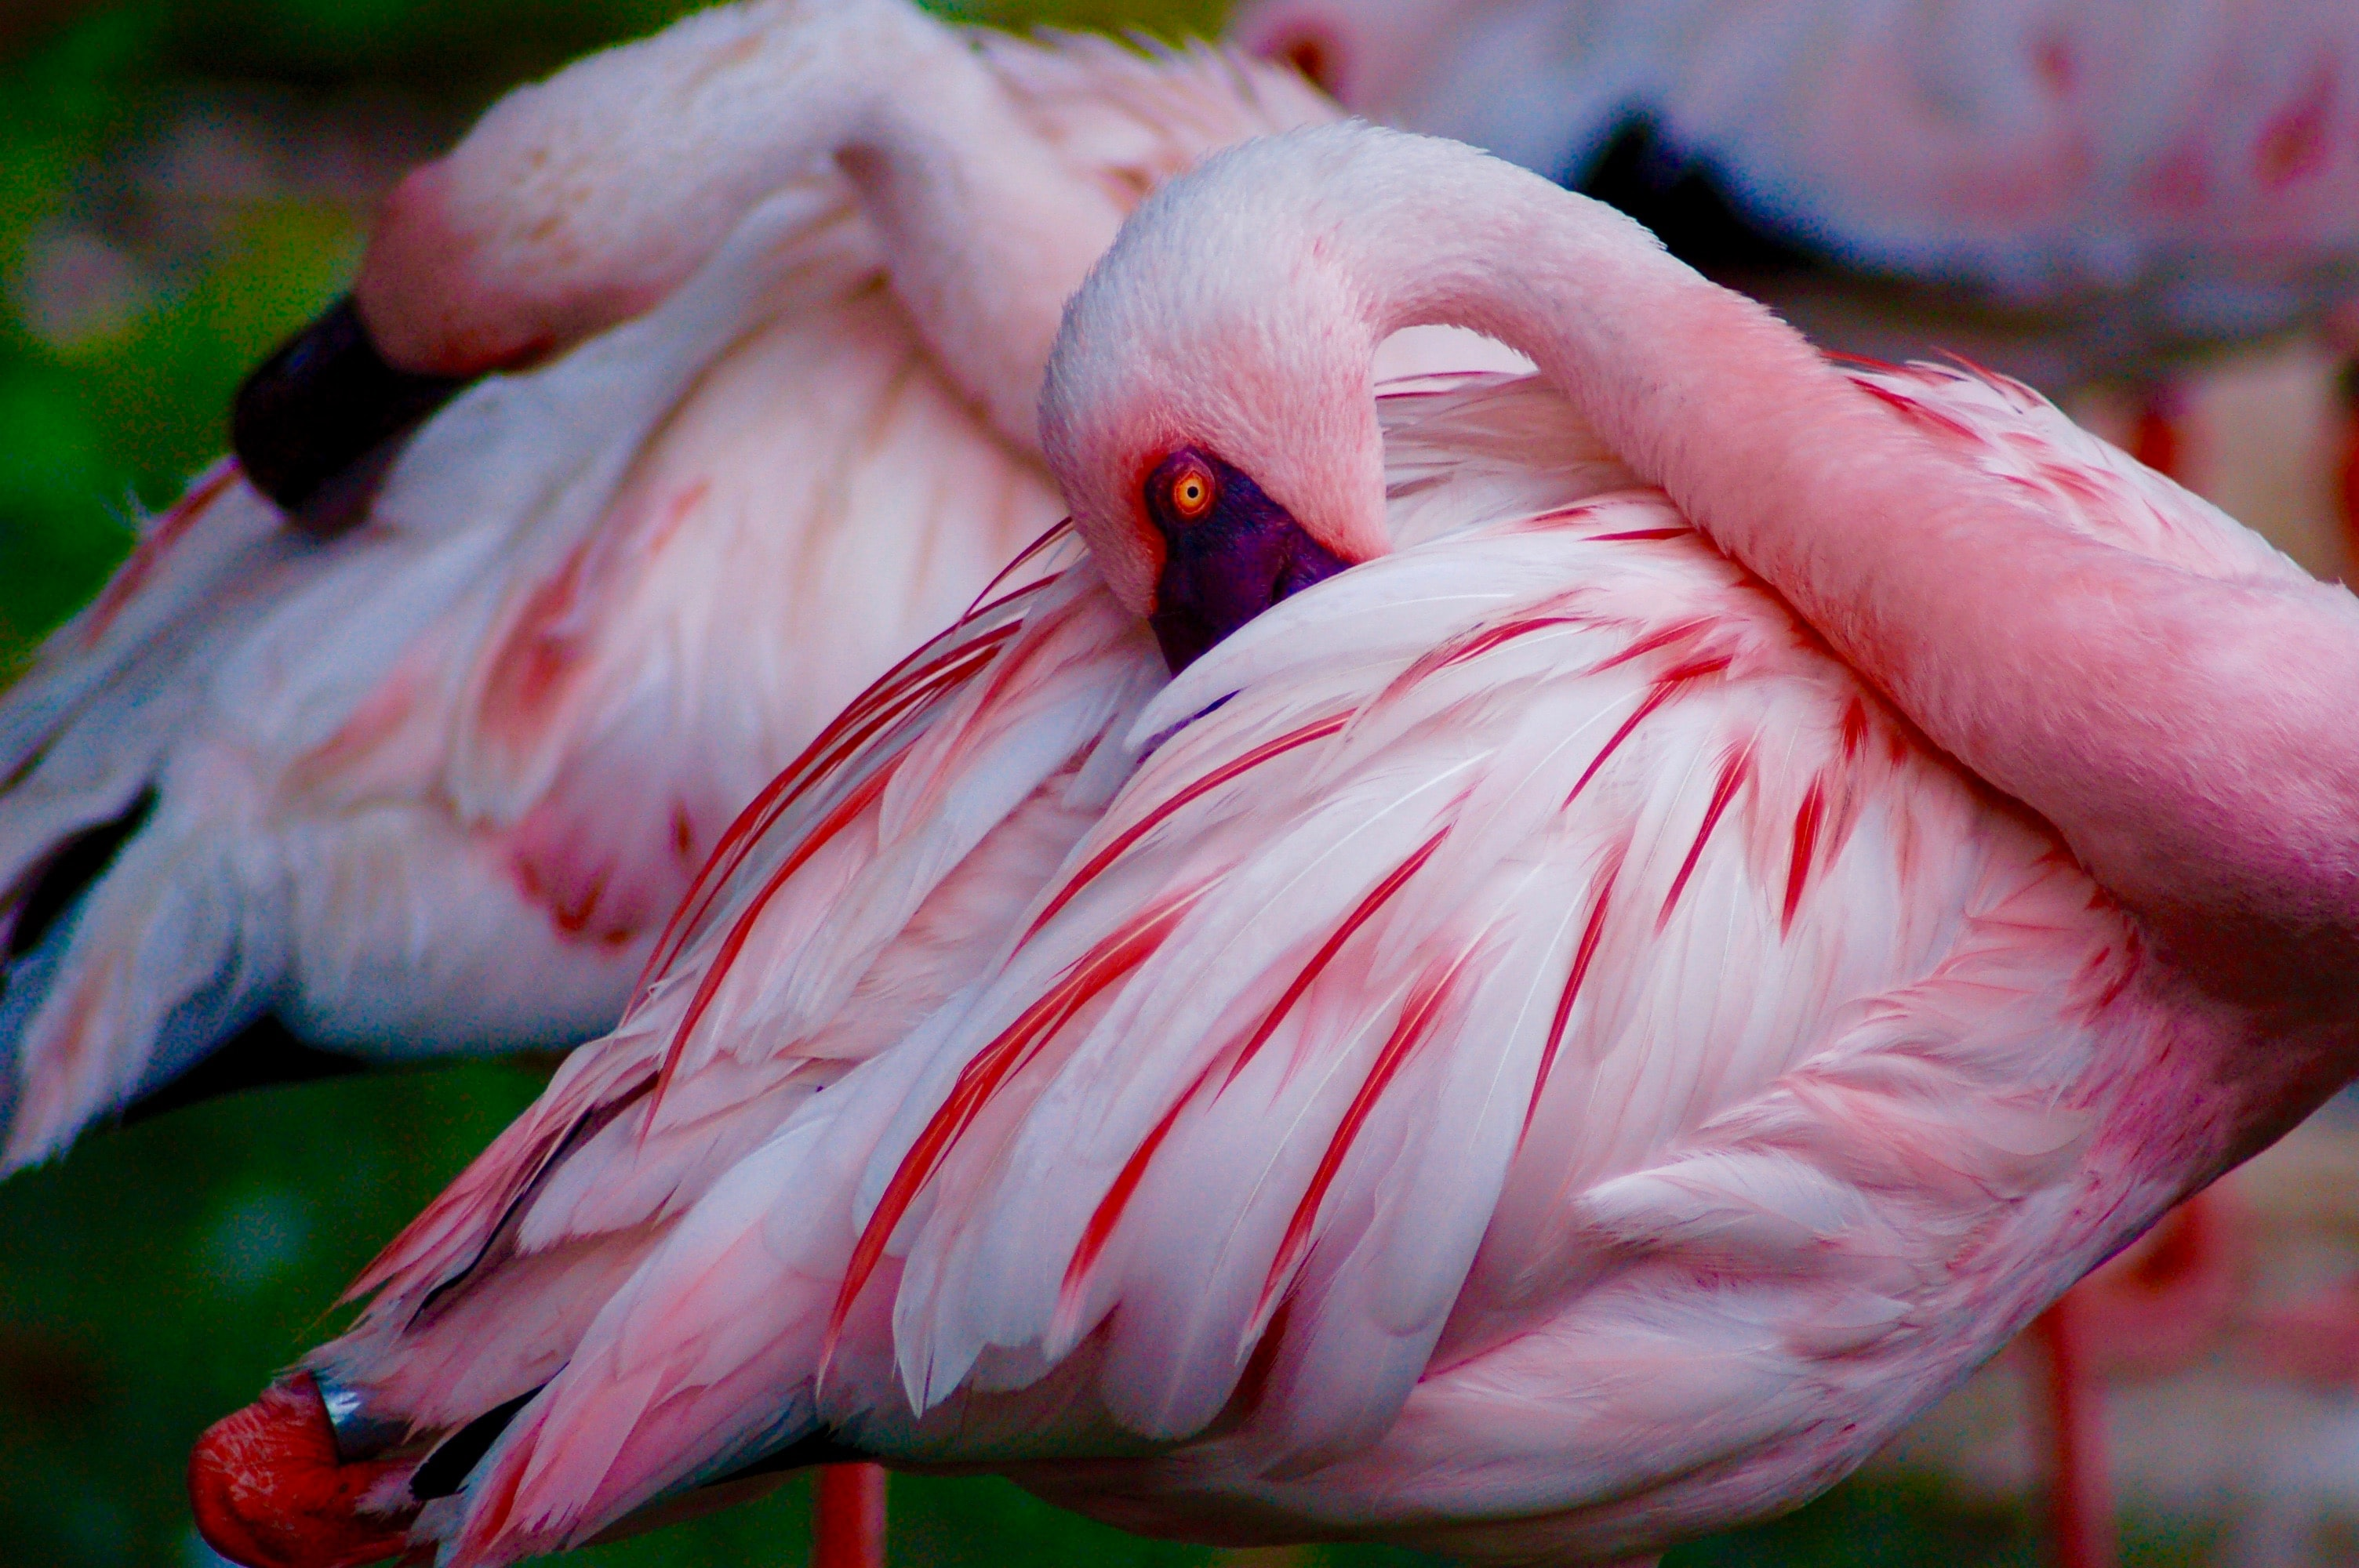 closeup photo of two pink-and-white birds